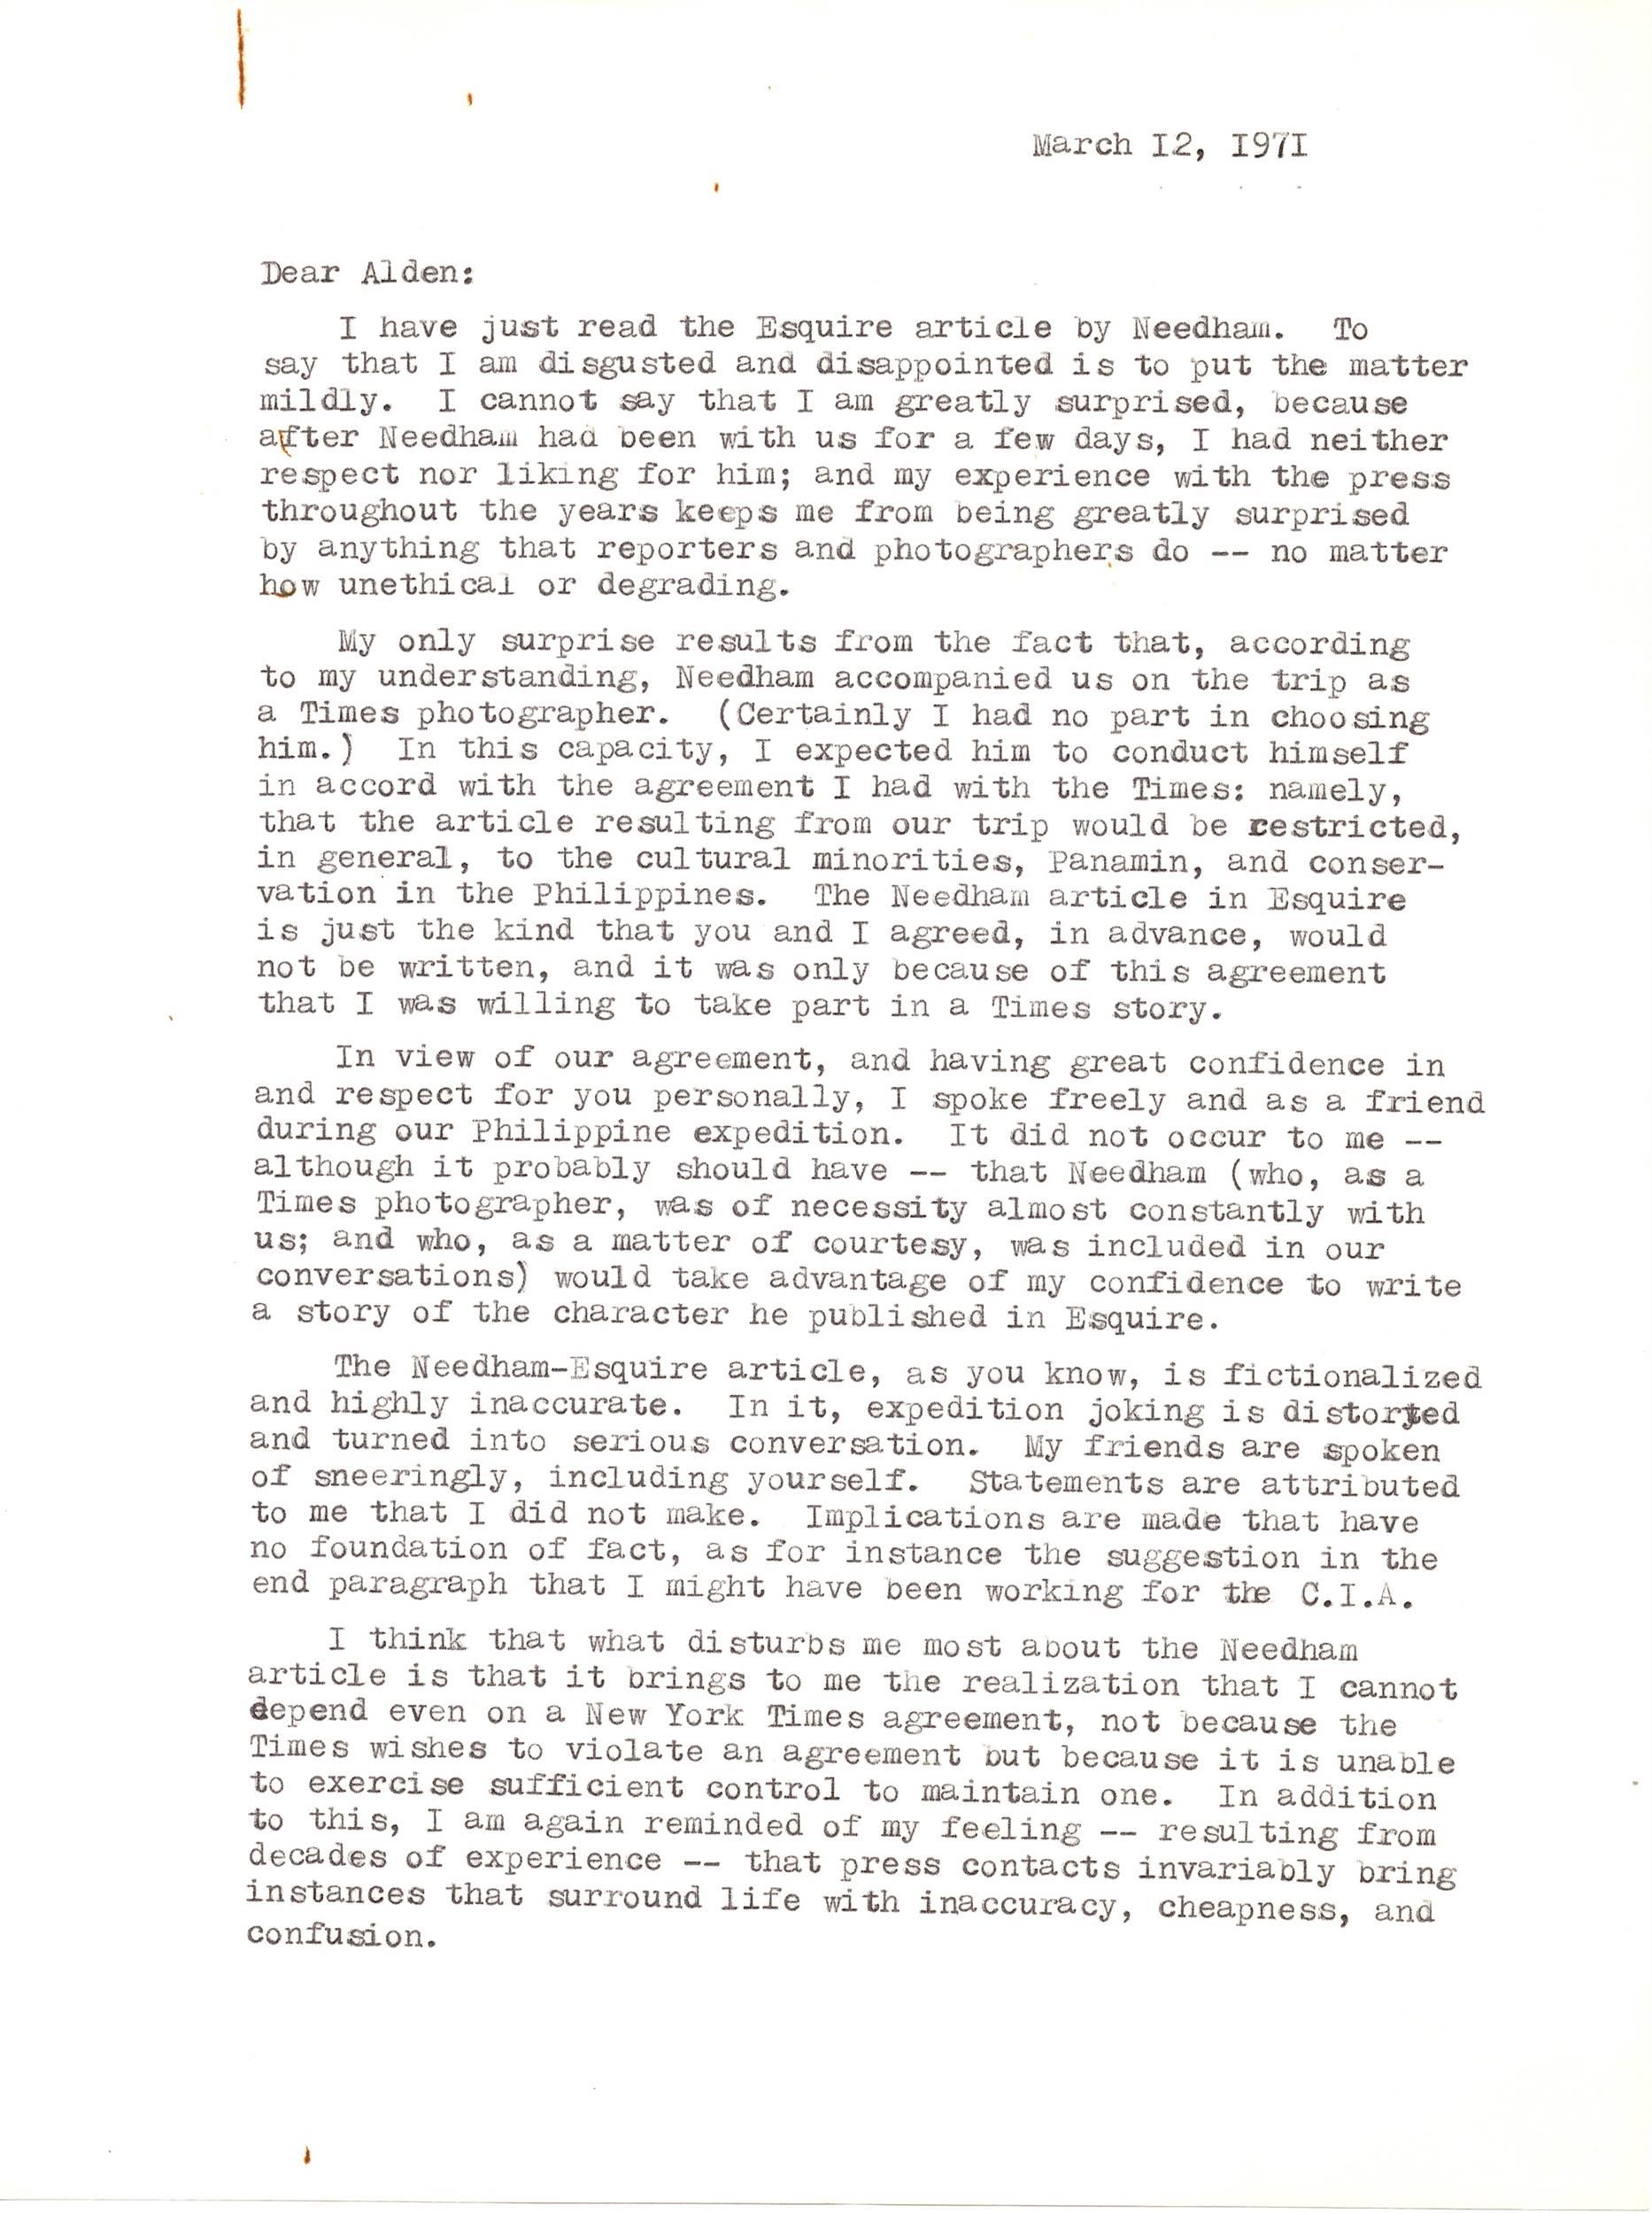 Lindbergh Scoffs at Idea of Him Working for the CIA and Assails the Press